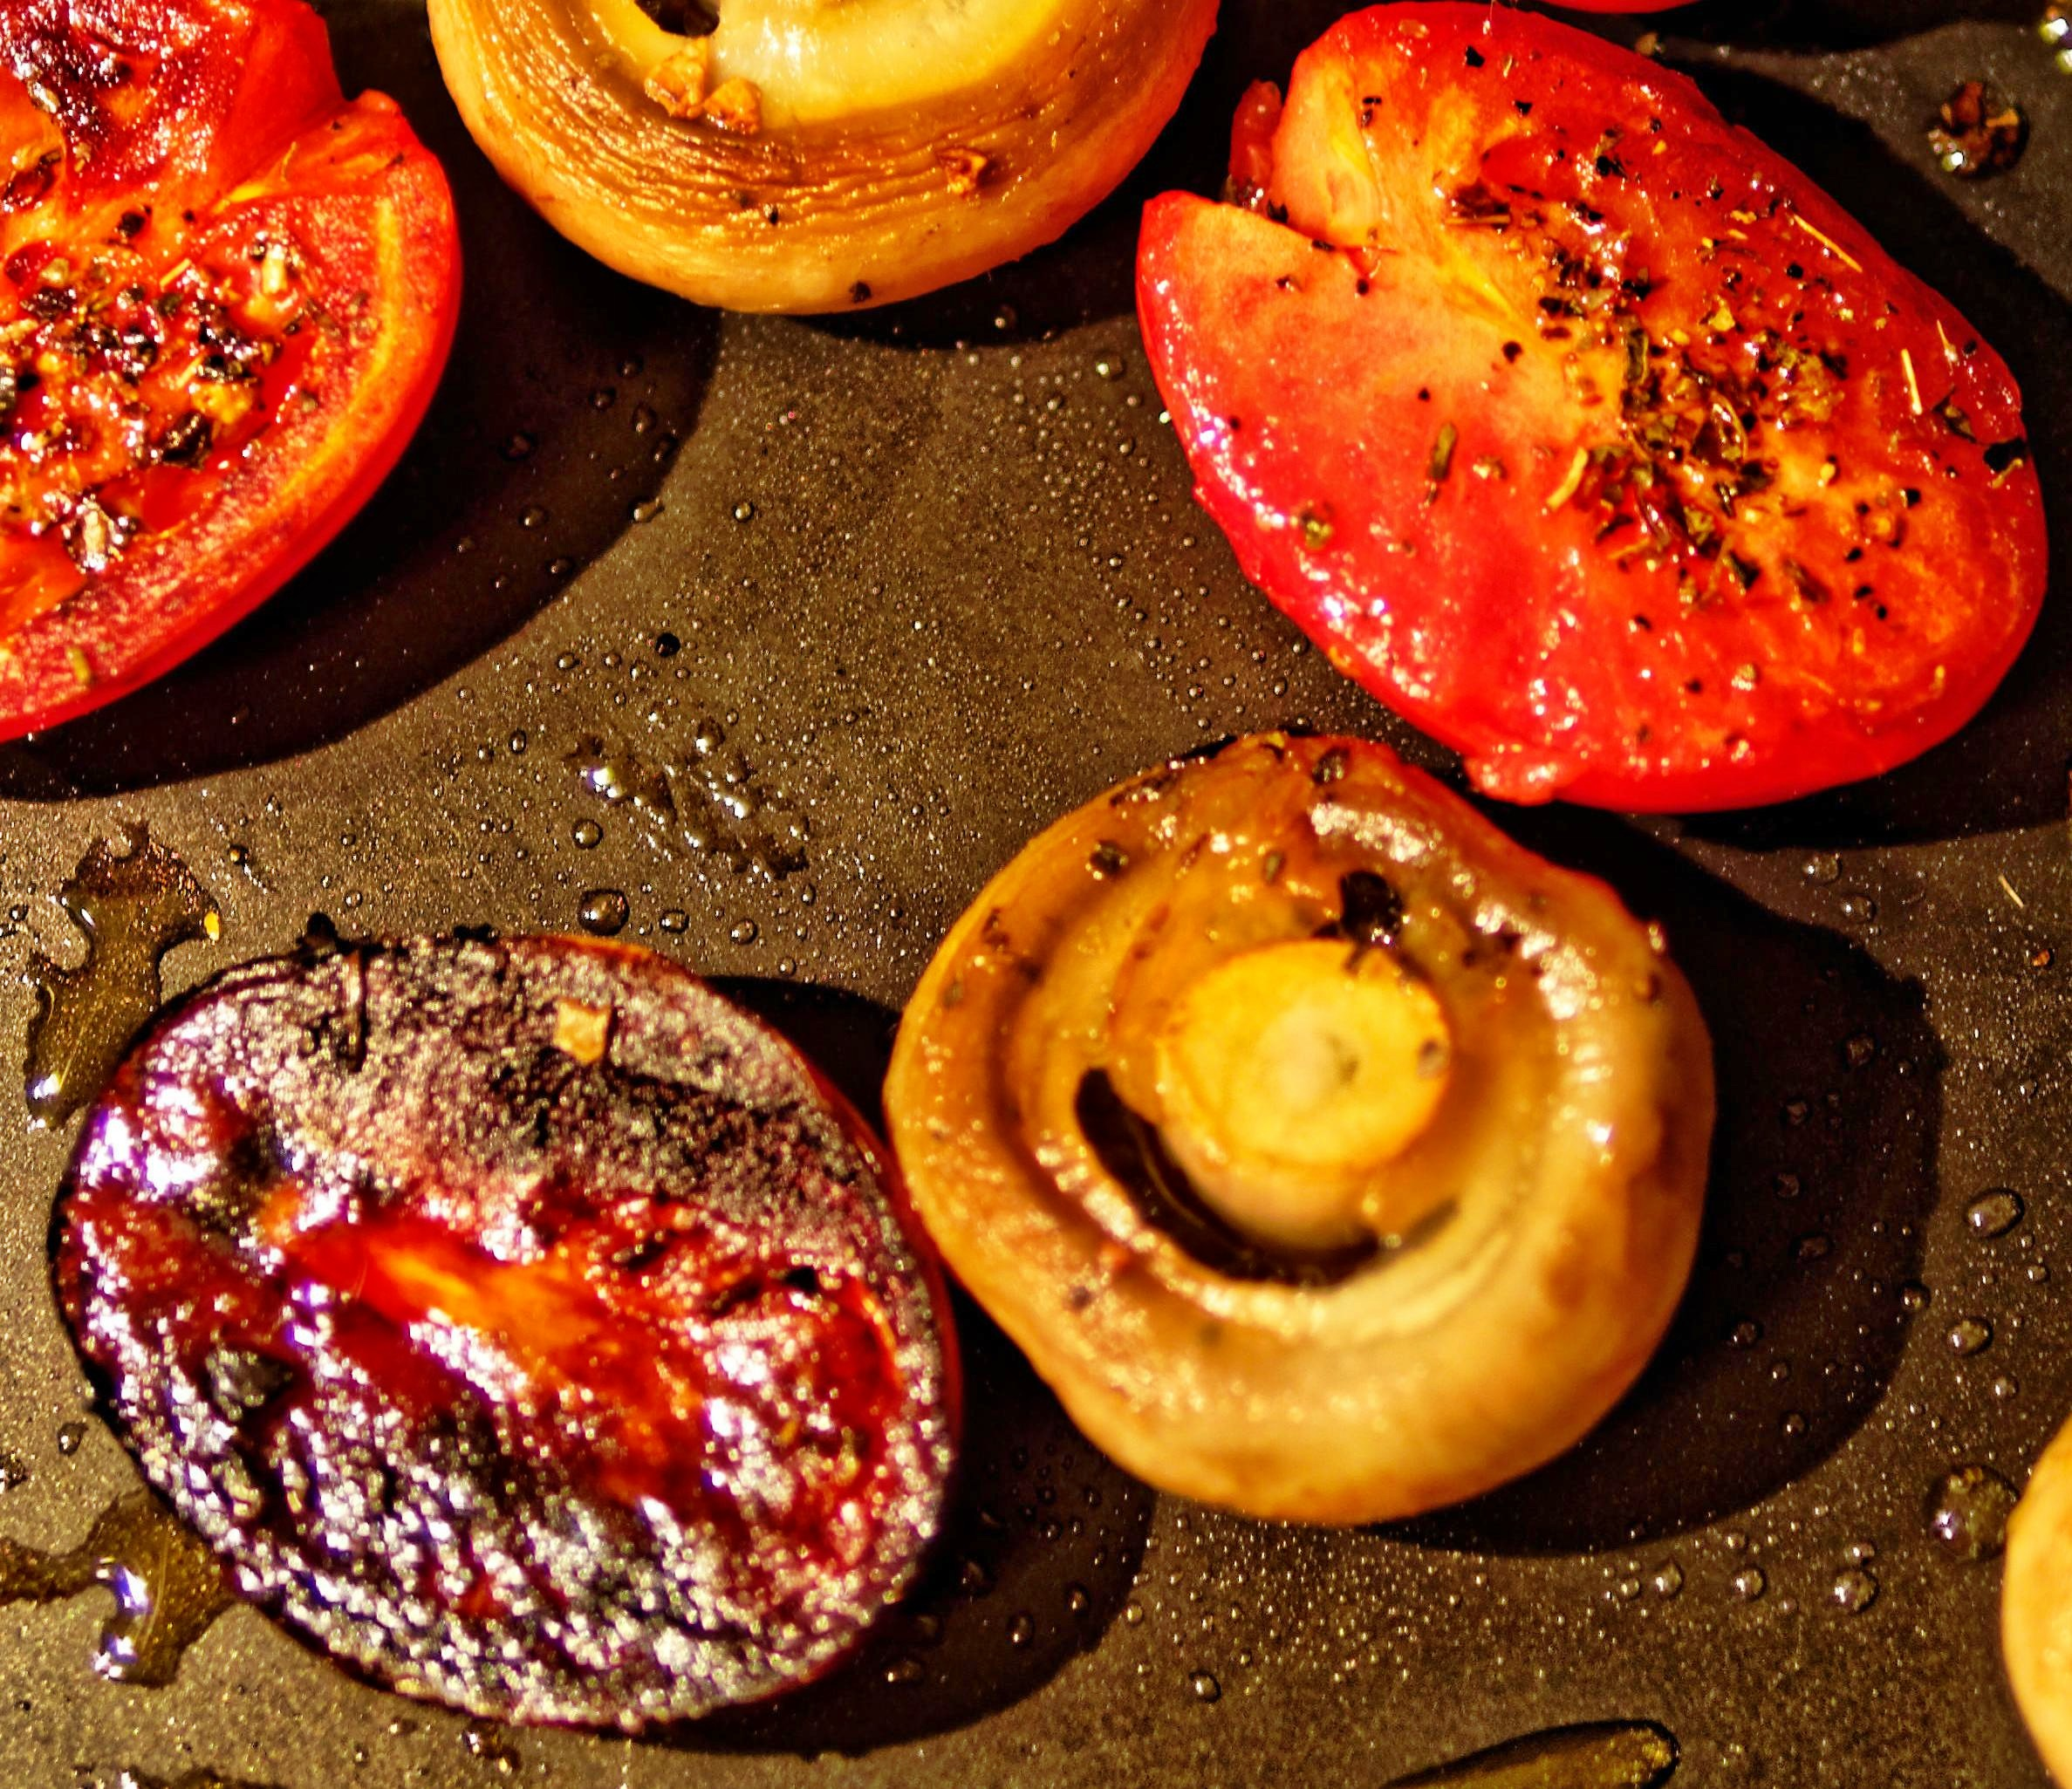 Tomatoes-mushrooms-detail.jpeg